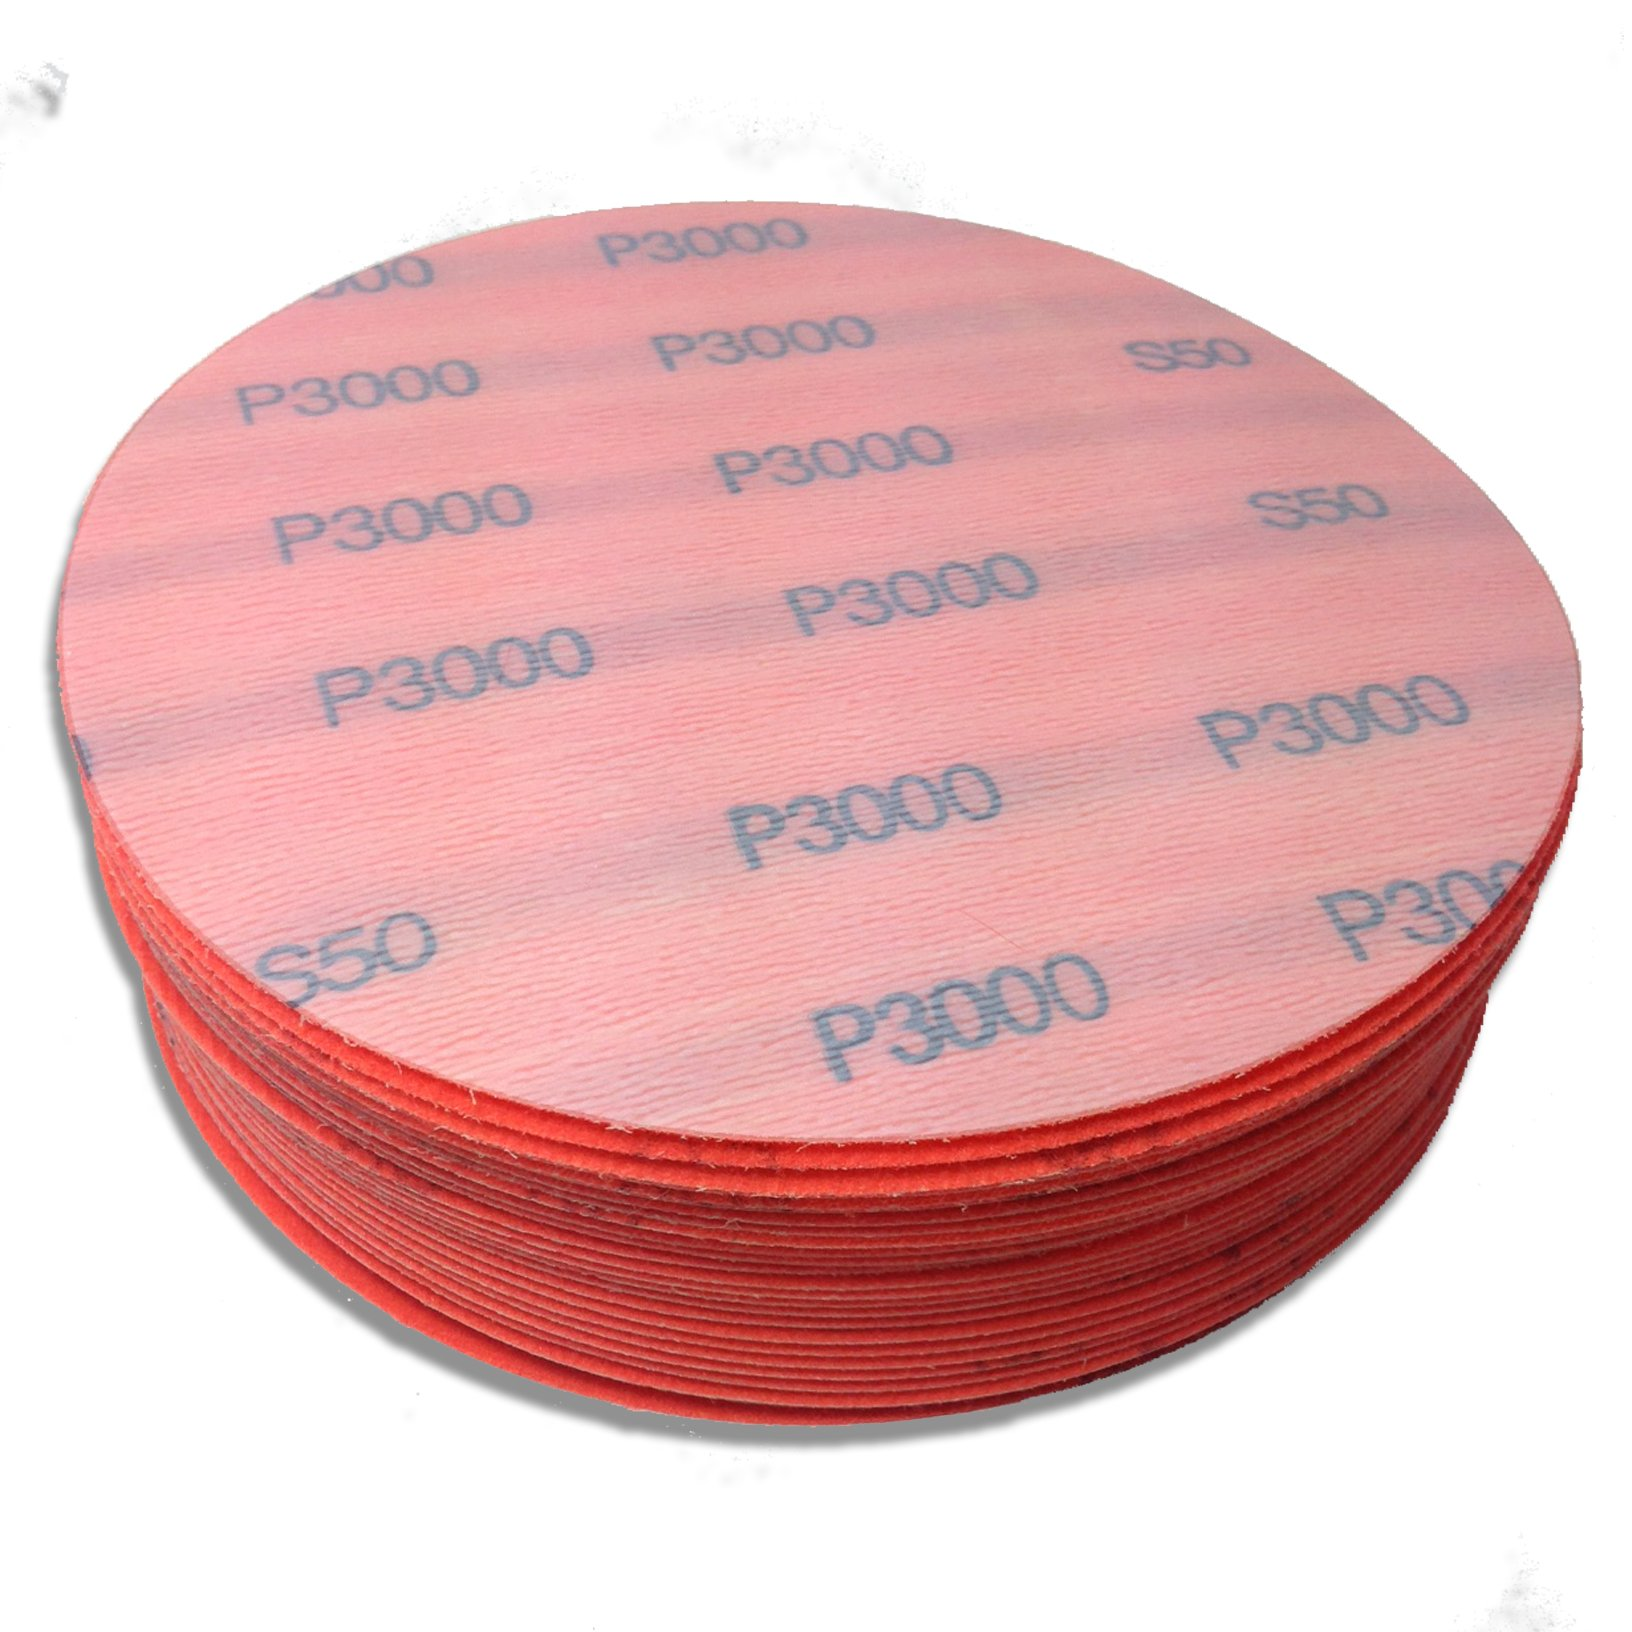 6 Inch 3000 Grit High Performance Hook and Loop Wet/Dry Auto Body Film Sanding Discs, 50 Pack by Red Label Abrasives